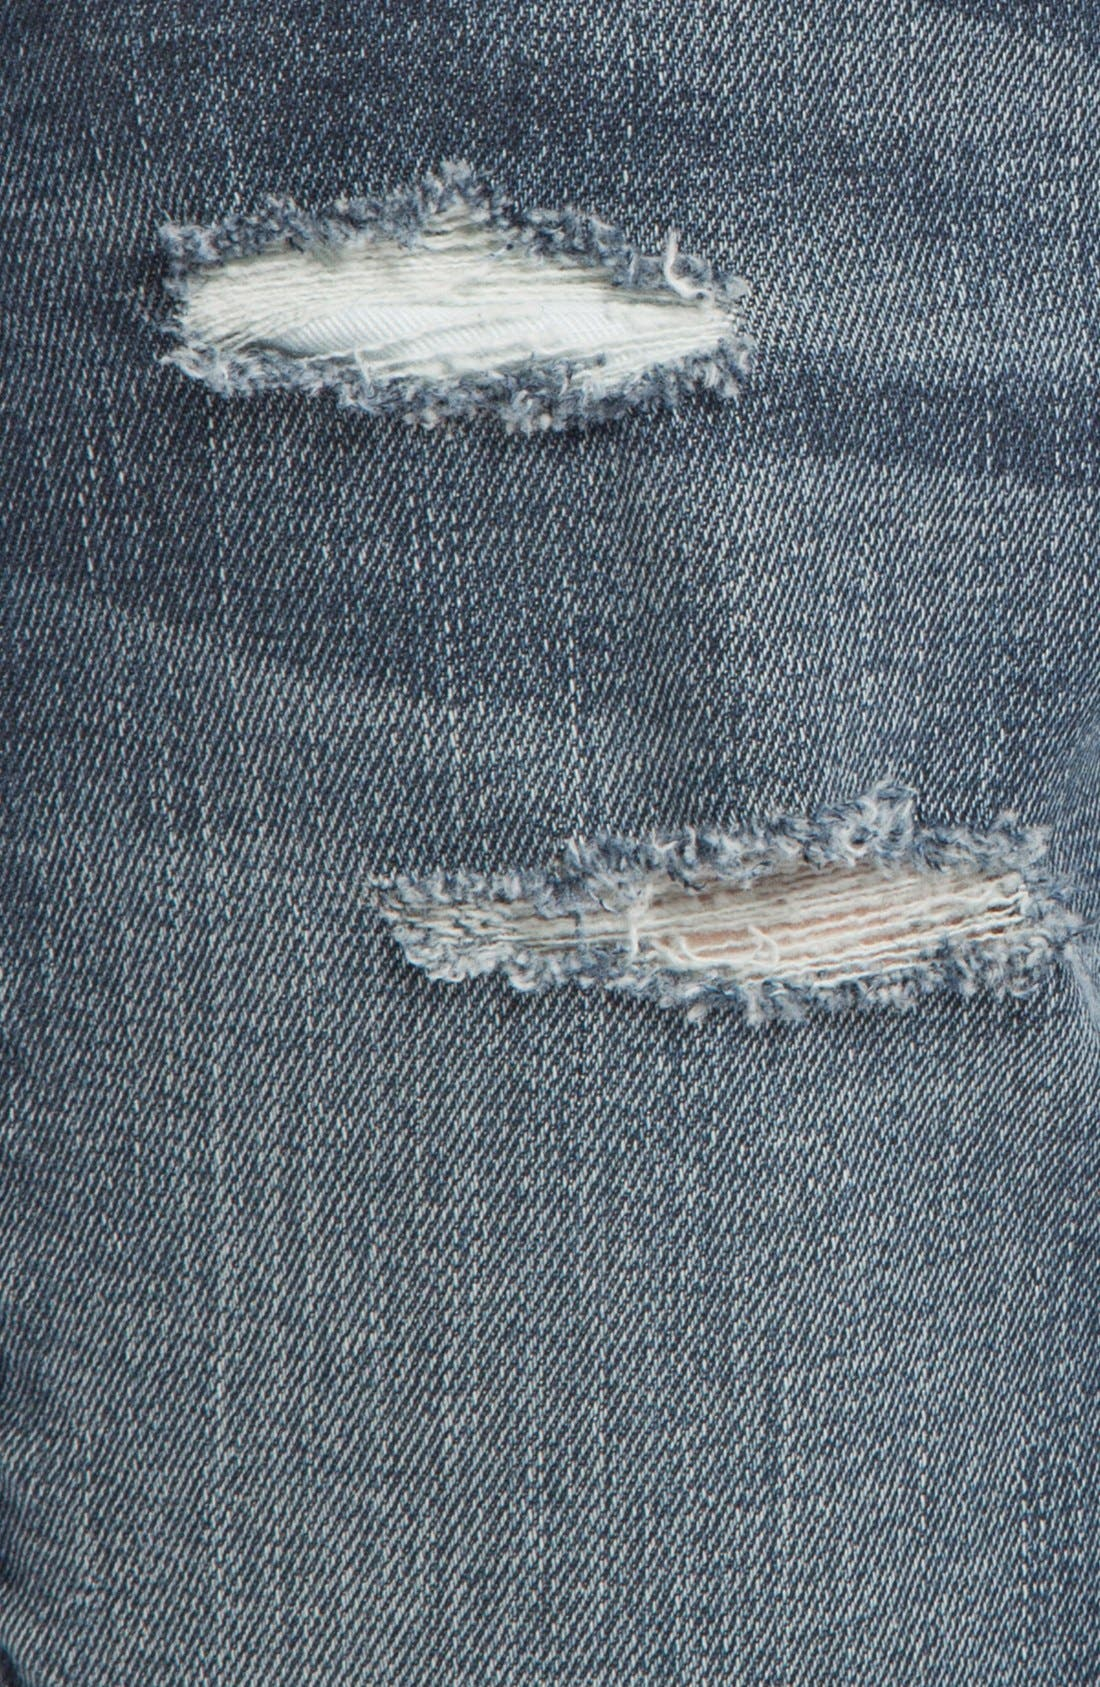 Alternate Image 3  - maje 'Daulnay' Destructed Boyfriend Jeans